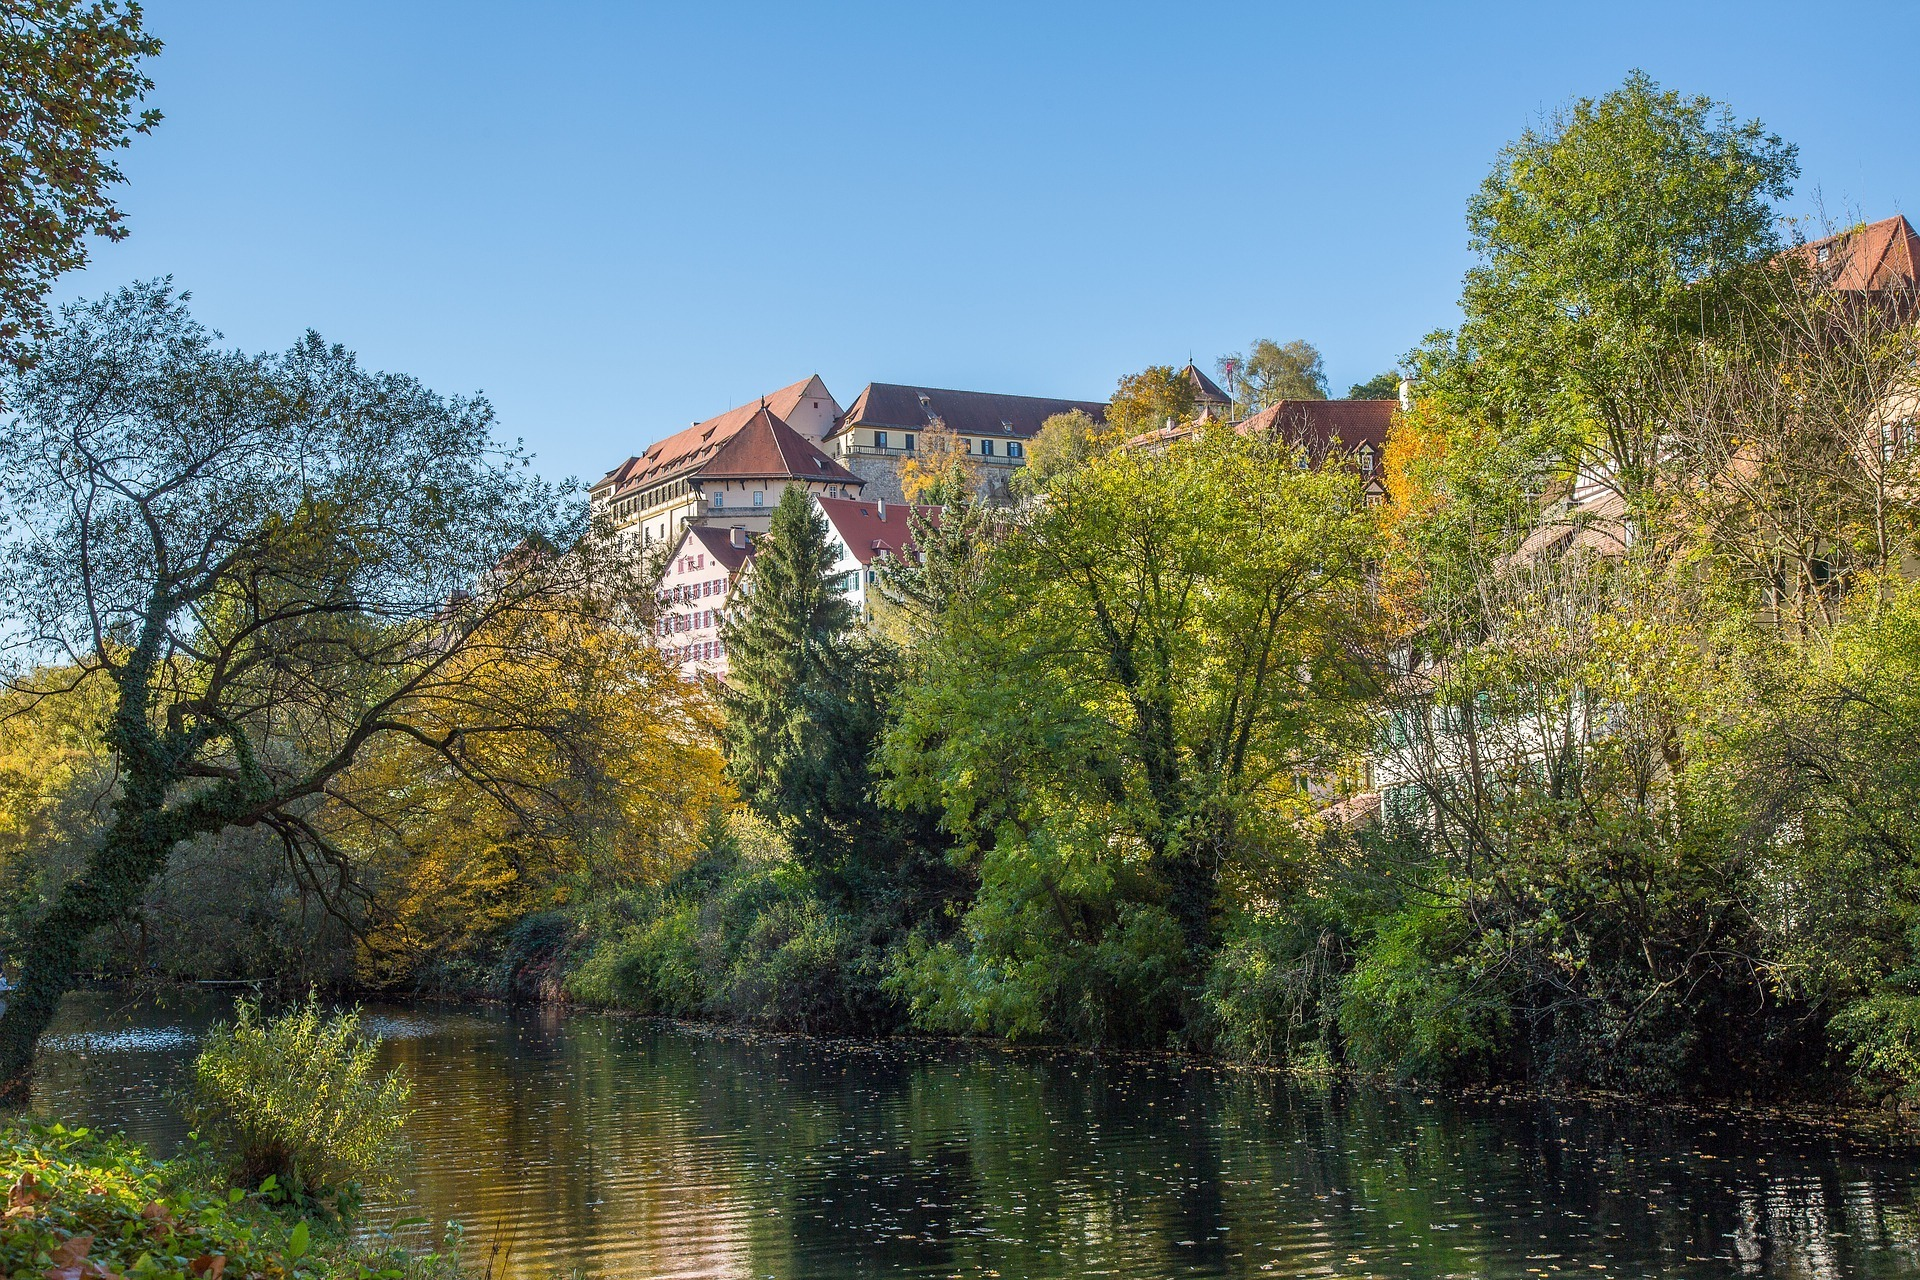 Schloss Hohen Tübingen Germany Photo Maxmann on Pixabay